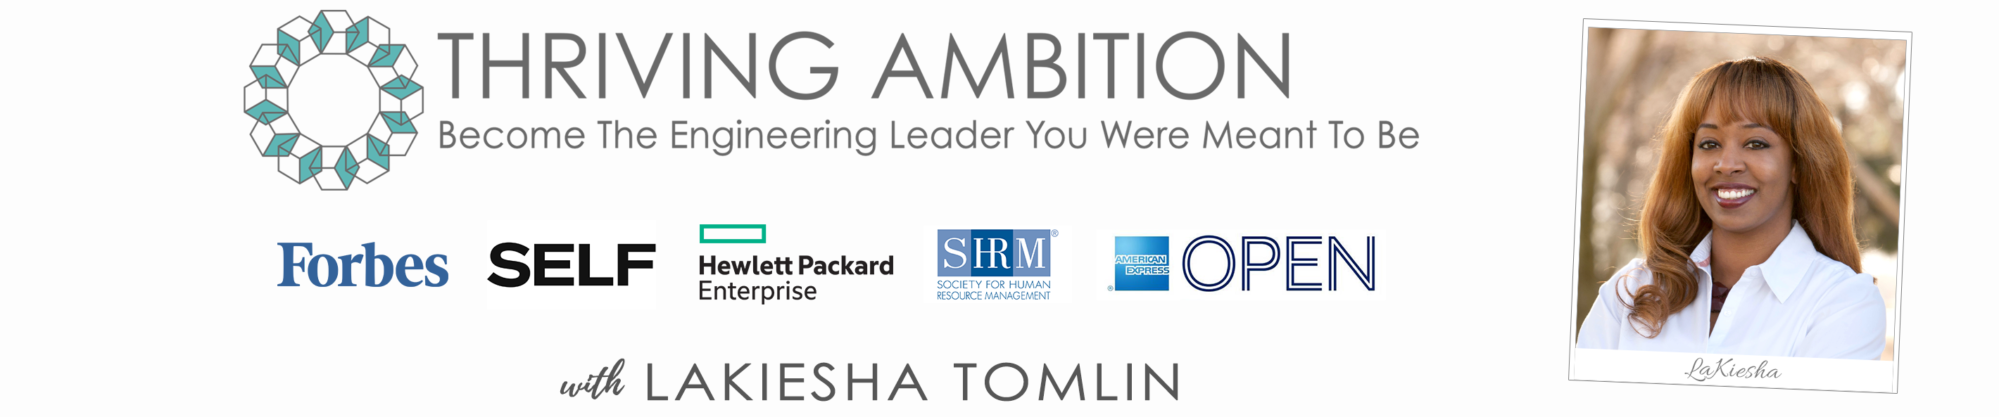 Thriving Ambition, Inc.